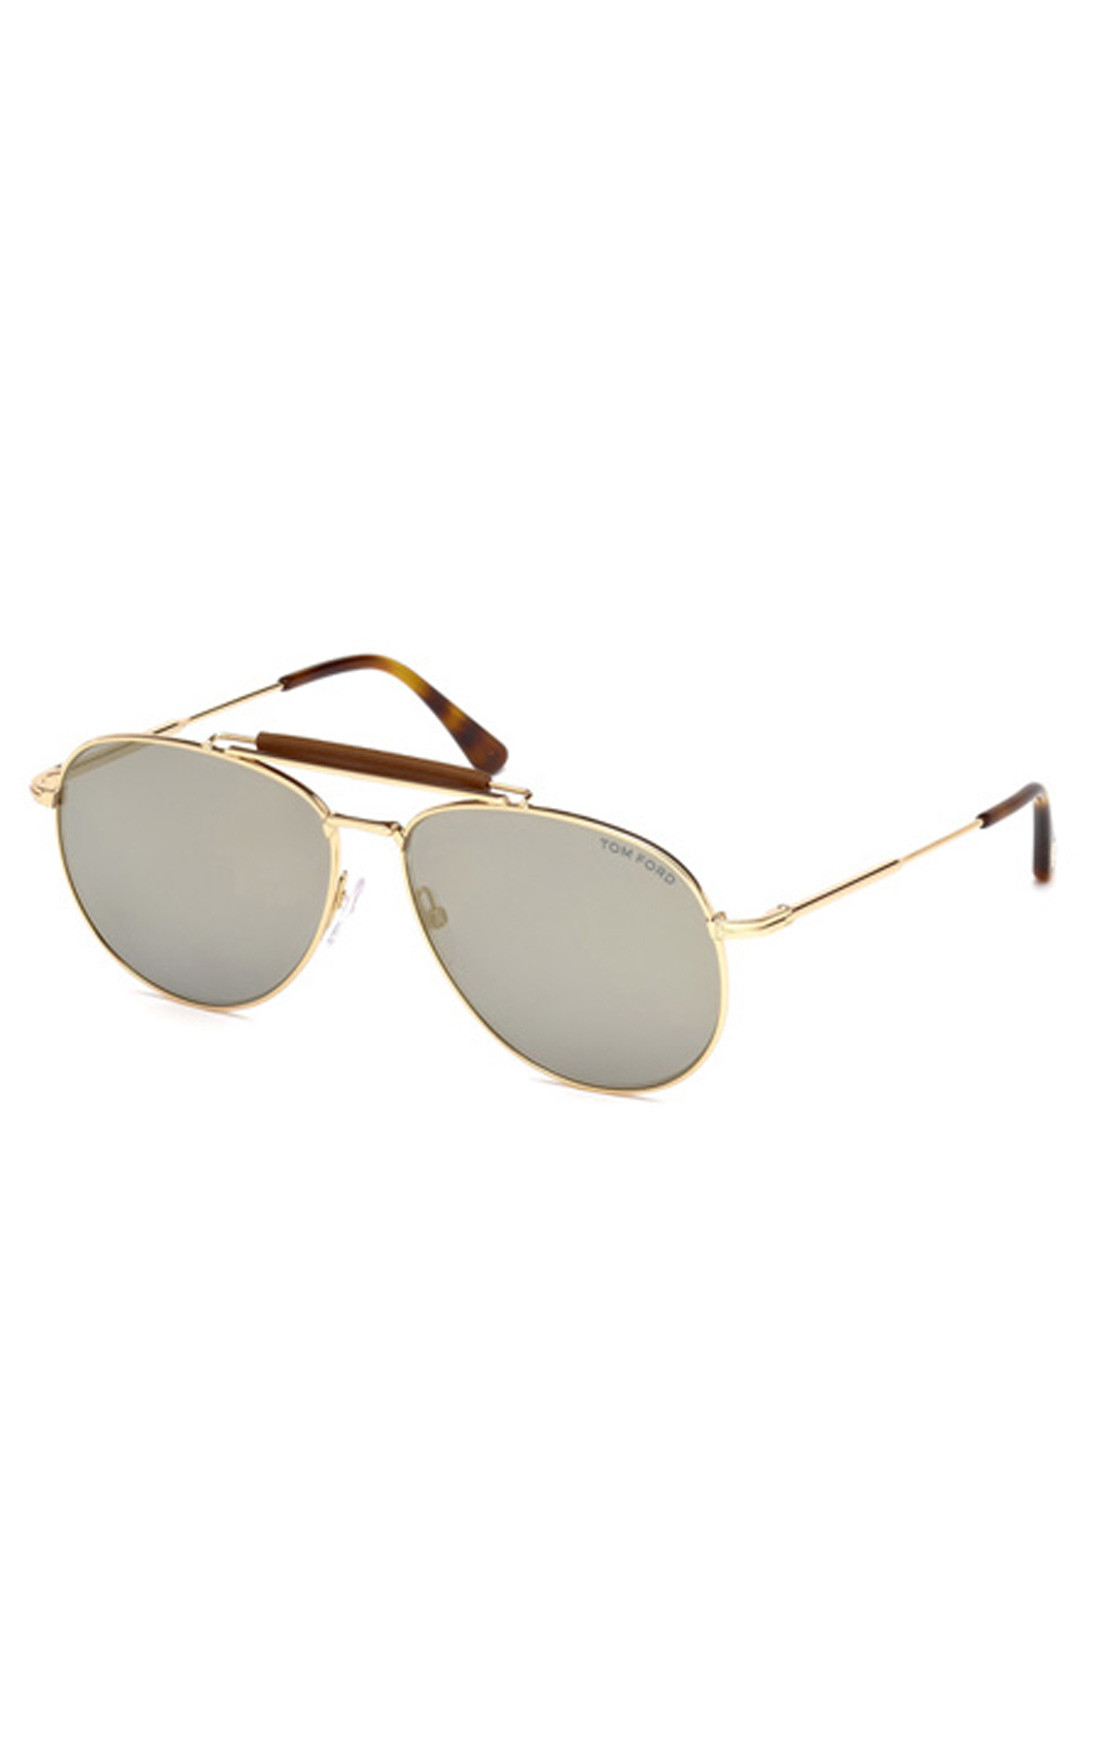 Tom Ford - Sean Shiny Rose Gold Aviator Sunglasses (FT05366028C)